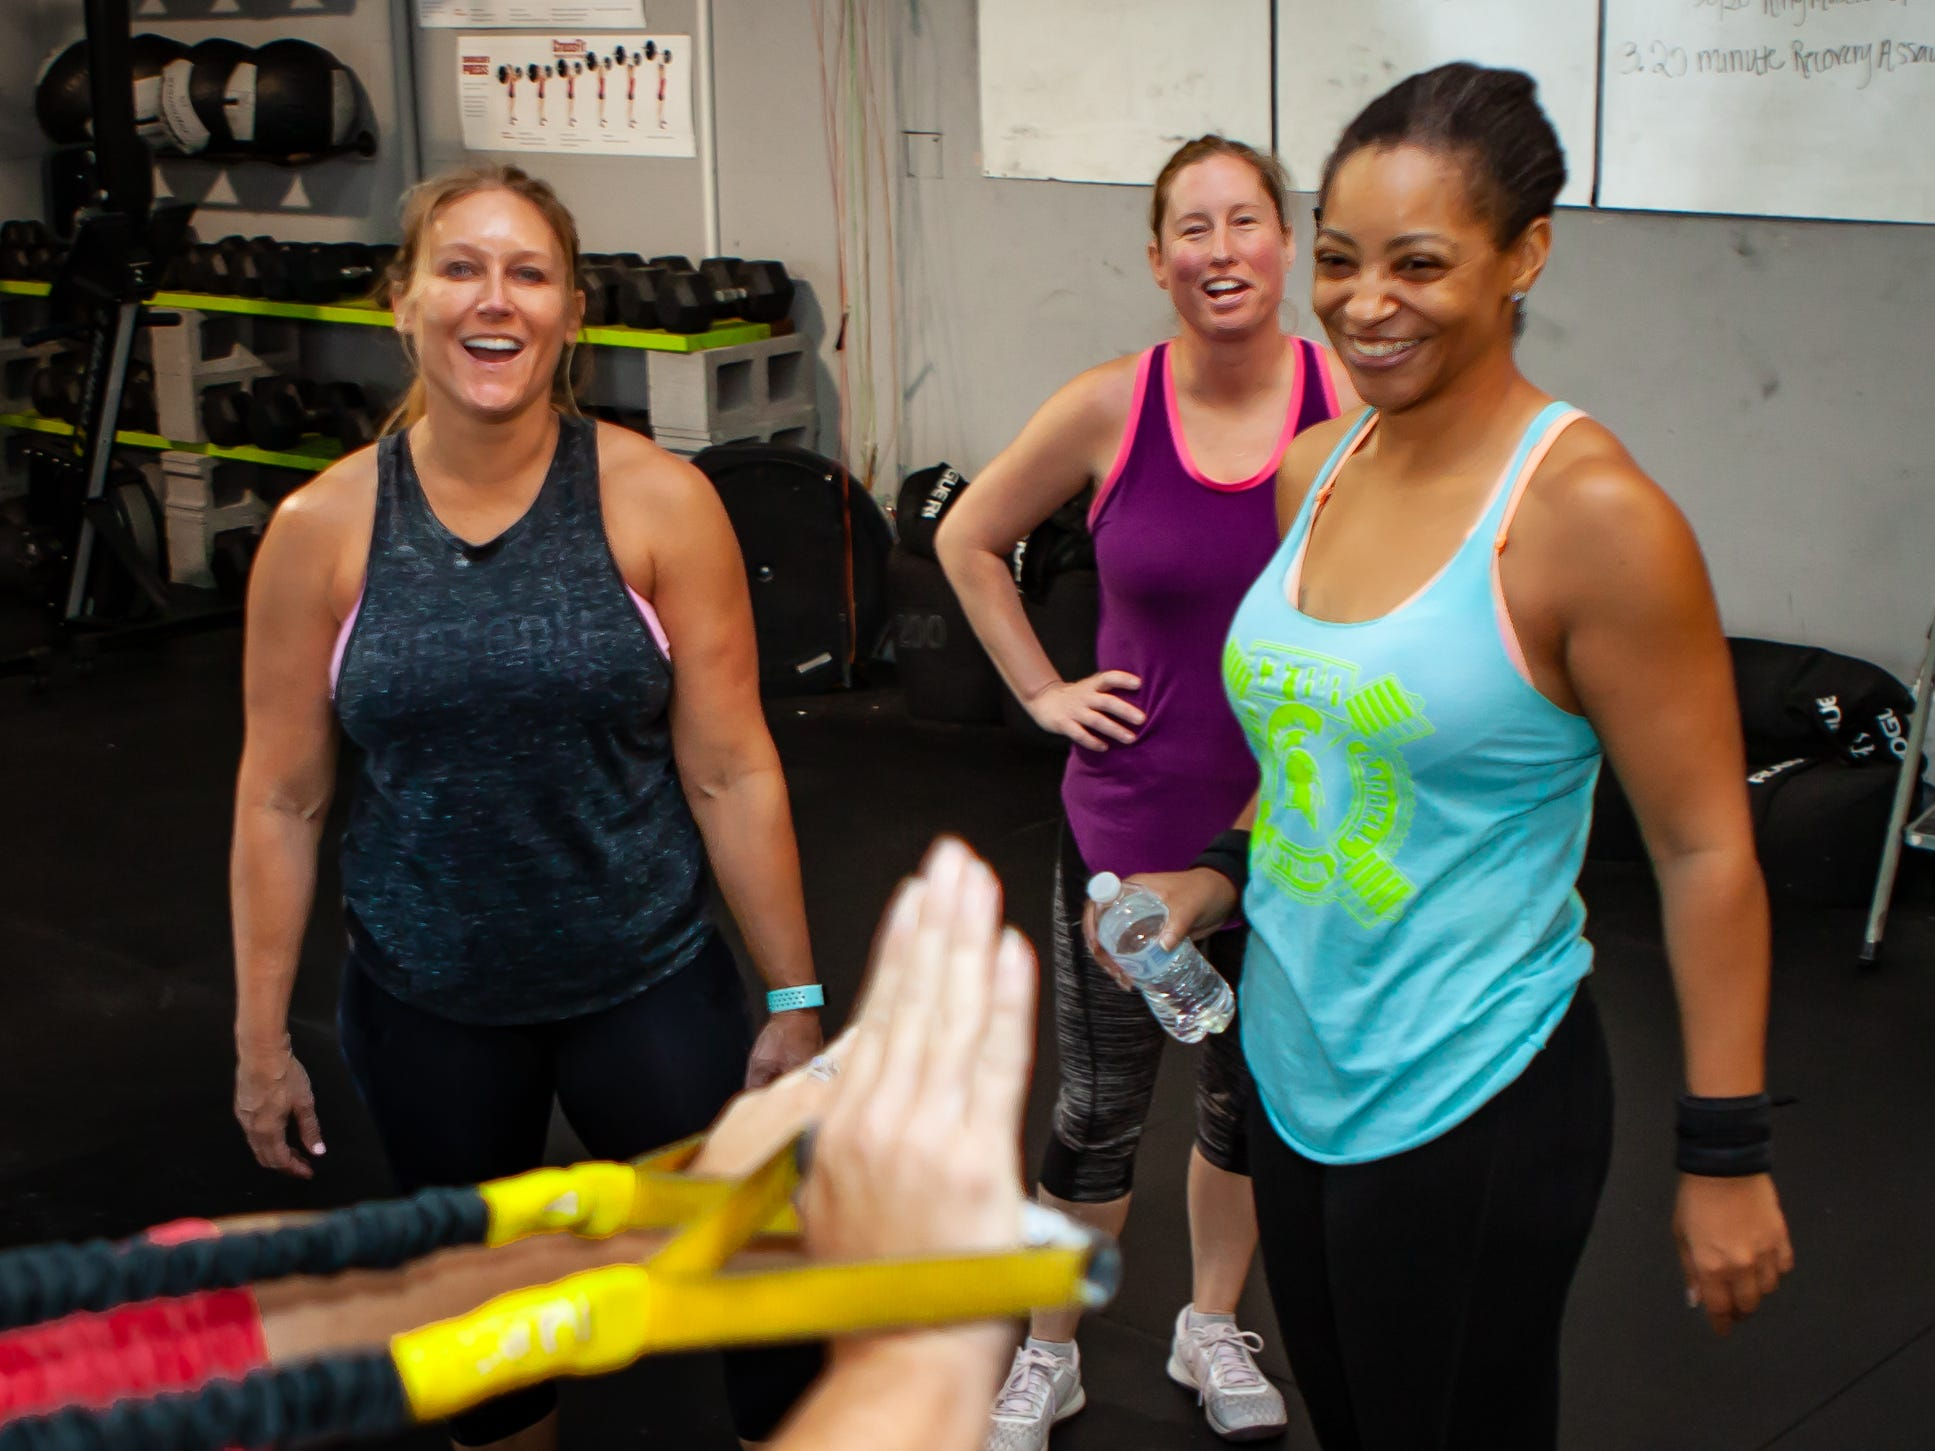 A group of CrossFit athletes at Barbell Batallion in downtown Murfreesboro encourage a member during a workout.